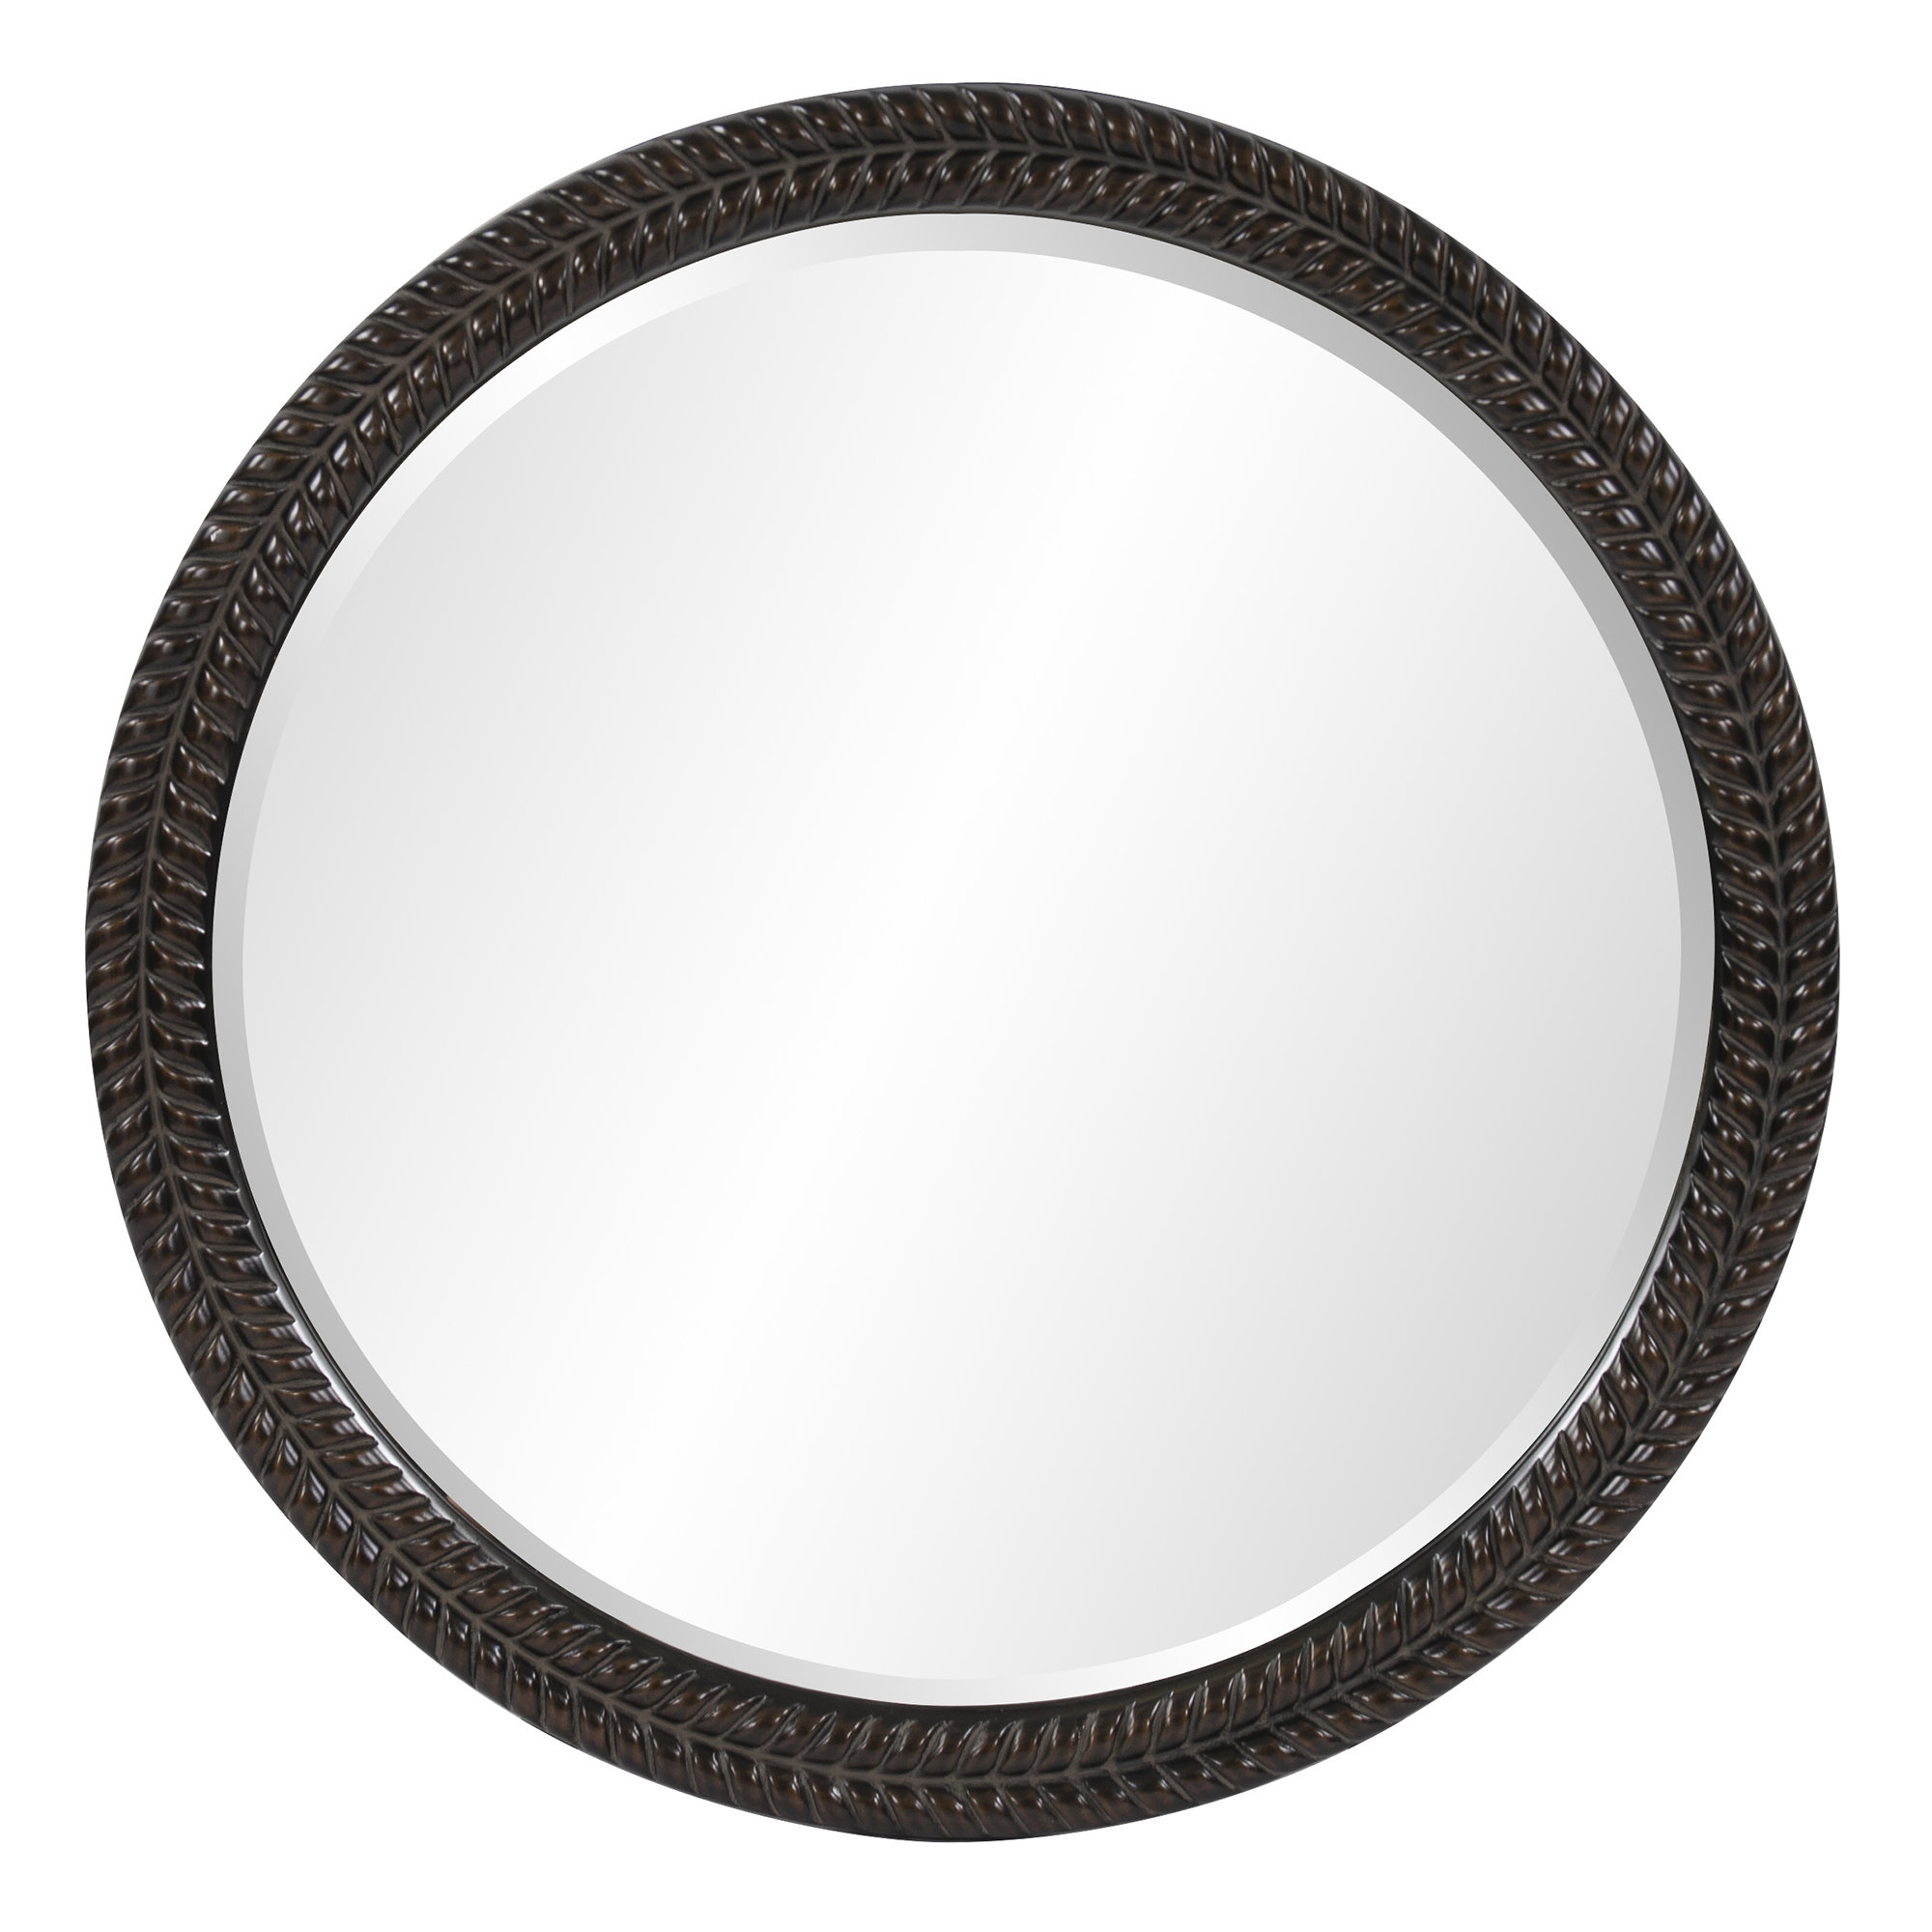 Charters Towers Accent Mirrors Throughout Fashionable Garrison Accent Mirror (View 19 of 20)